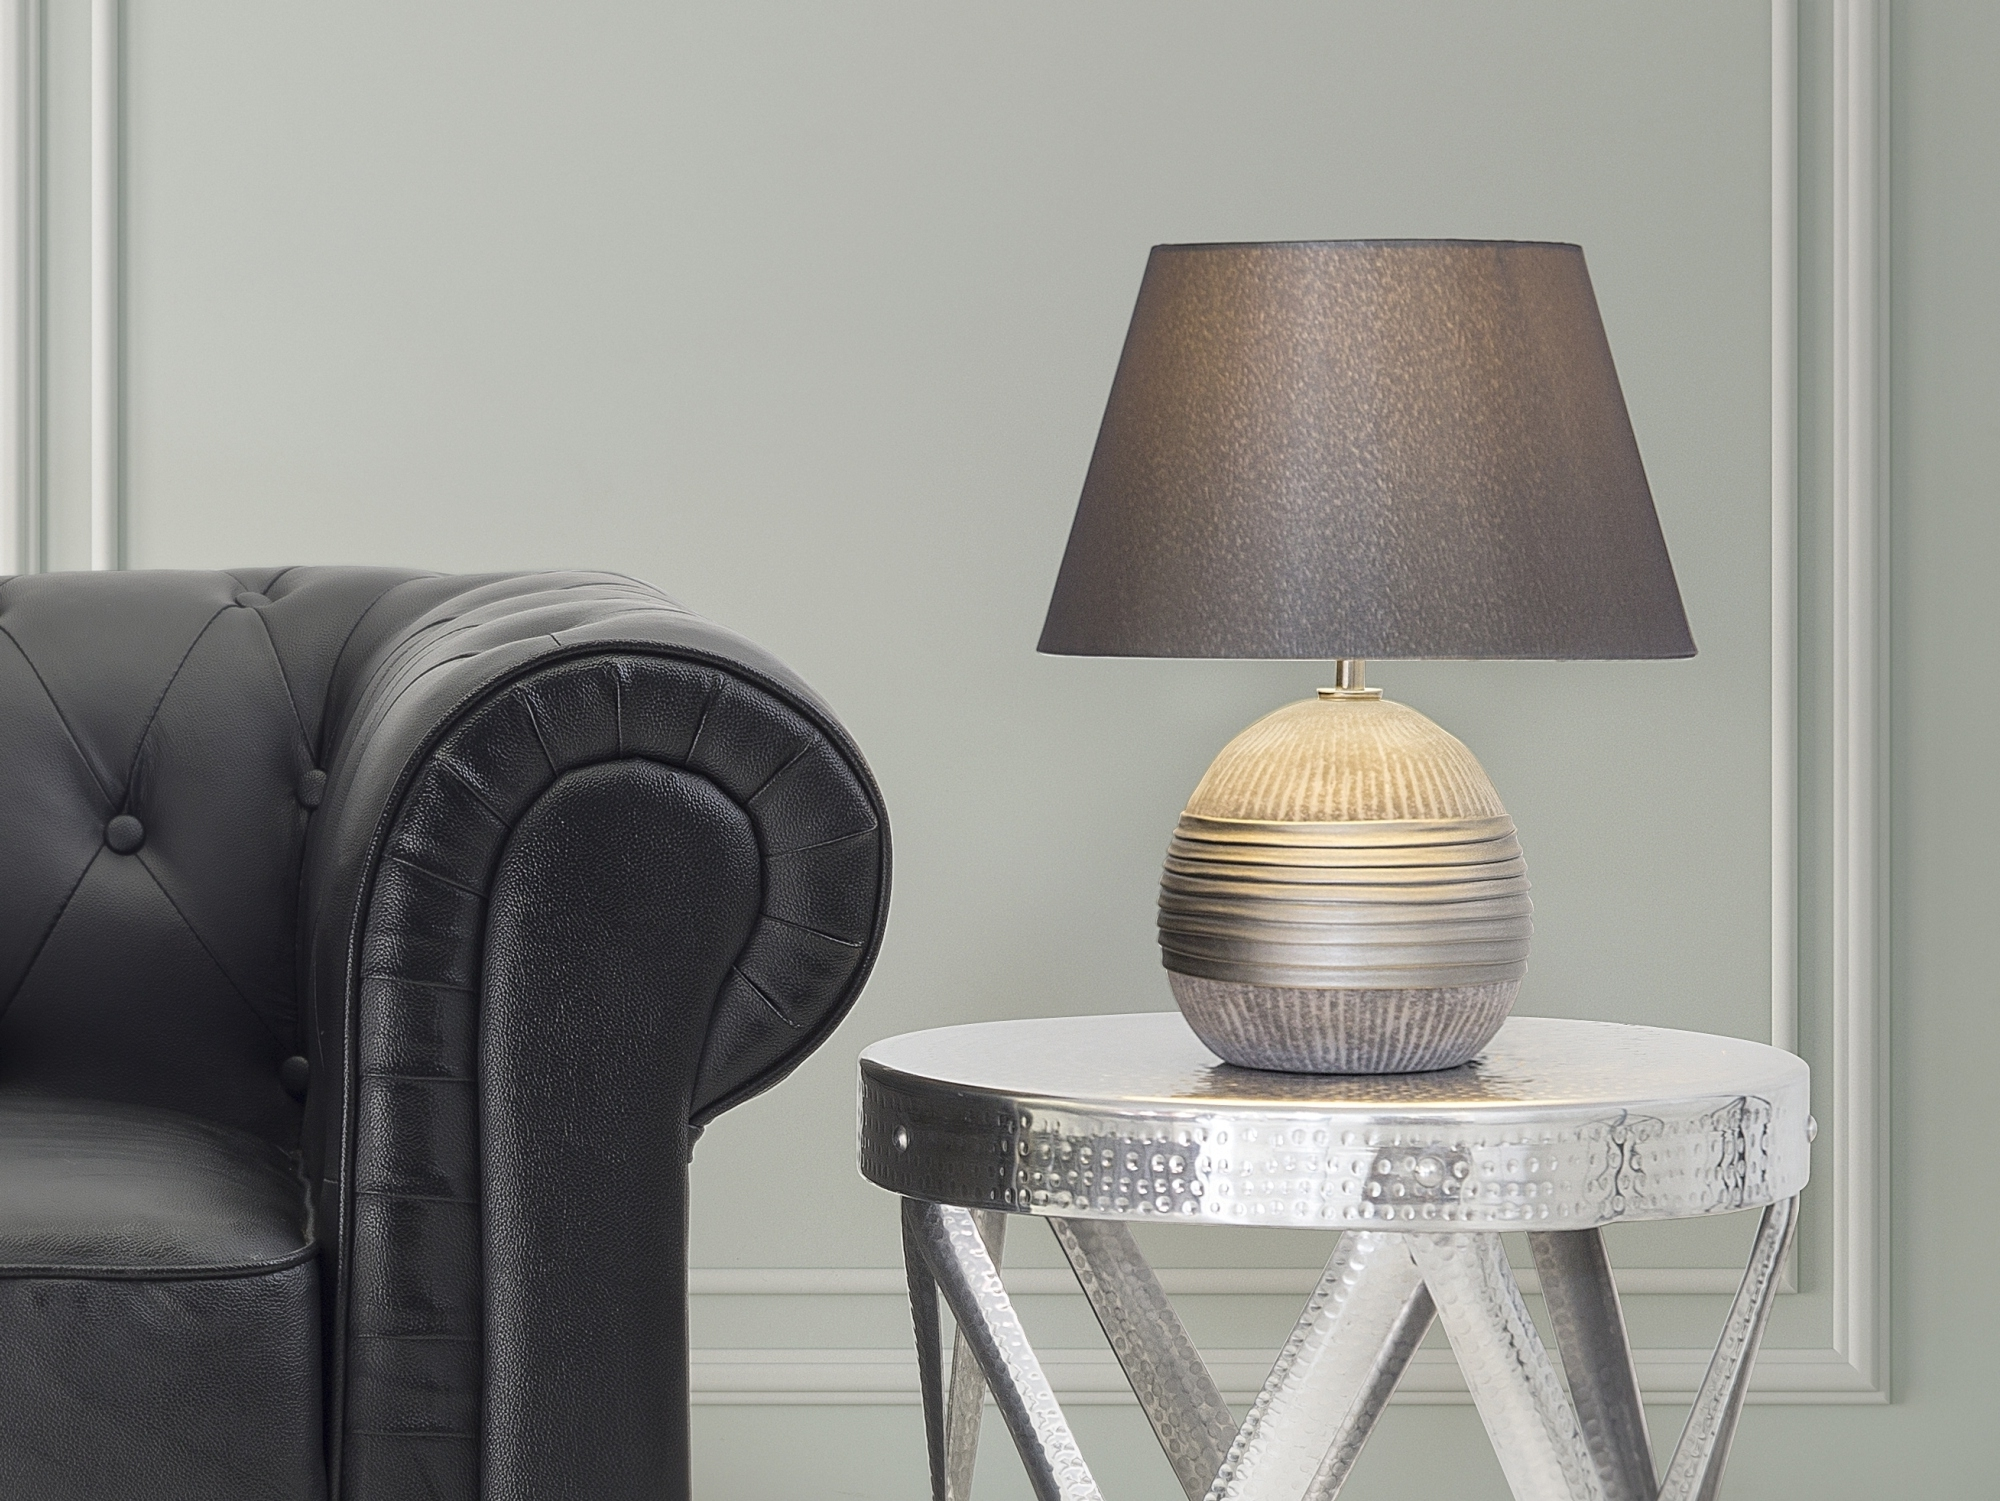 Widely Used Surprising Modern Table Lamps For Living Room 26 Fascinating Stylish With Regard To Wayfair Living Room Table Lamps (View 14 of 15)